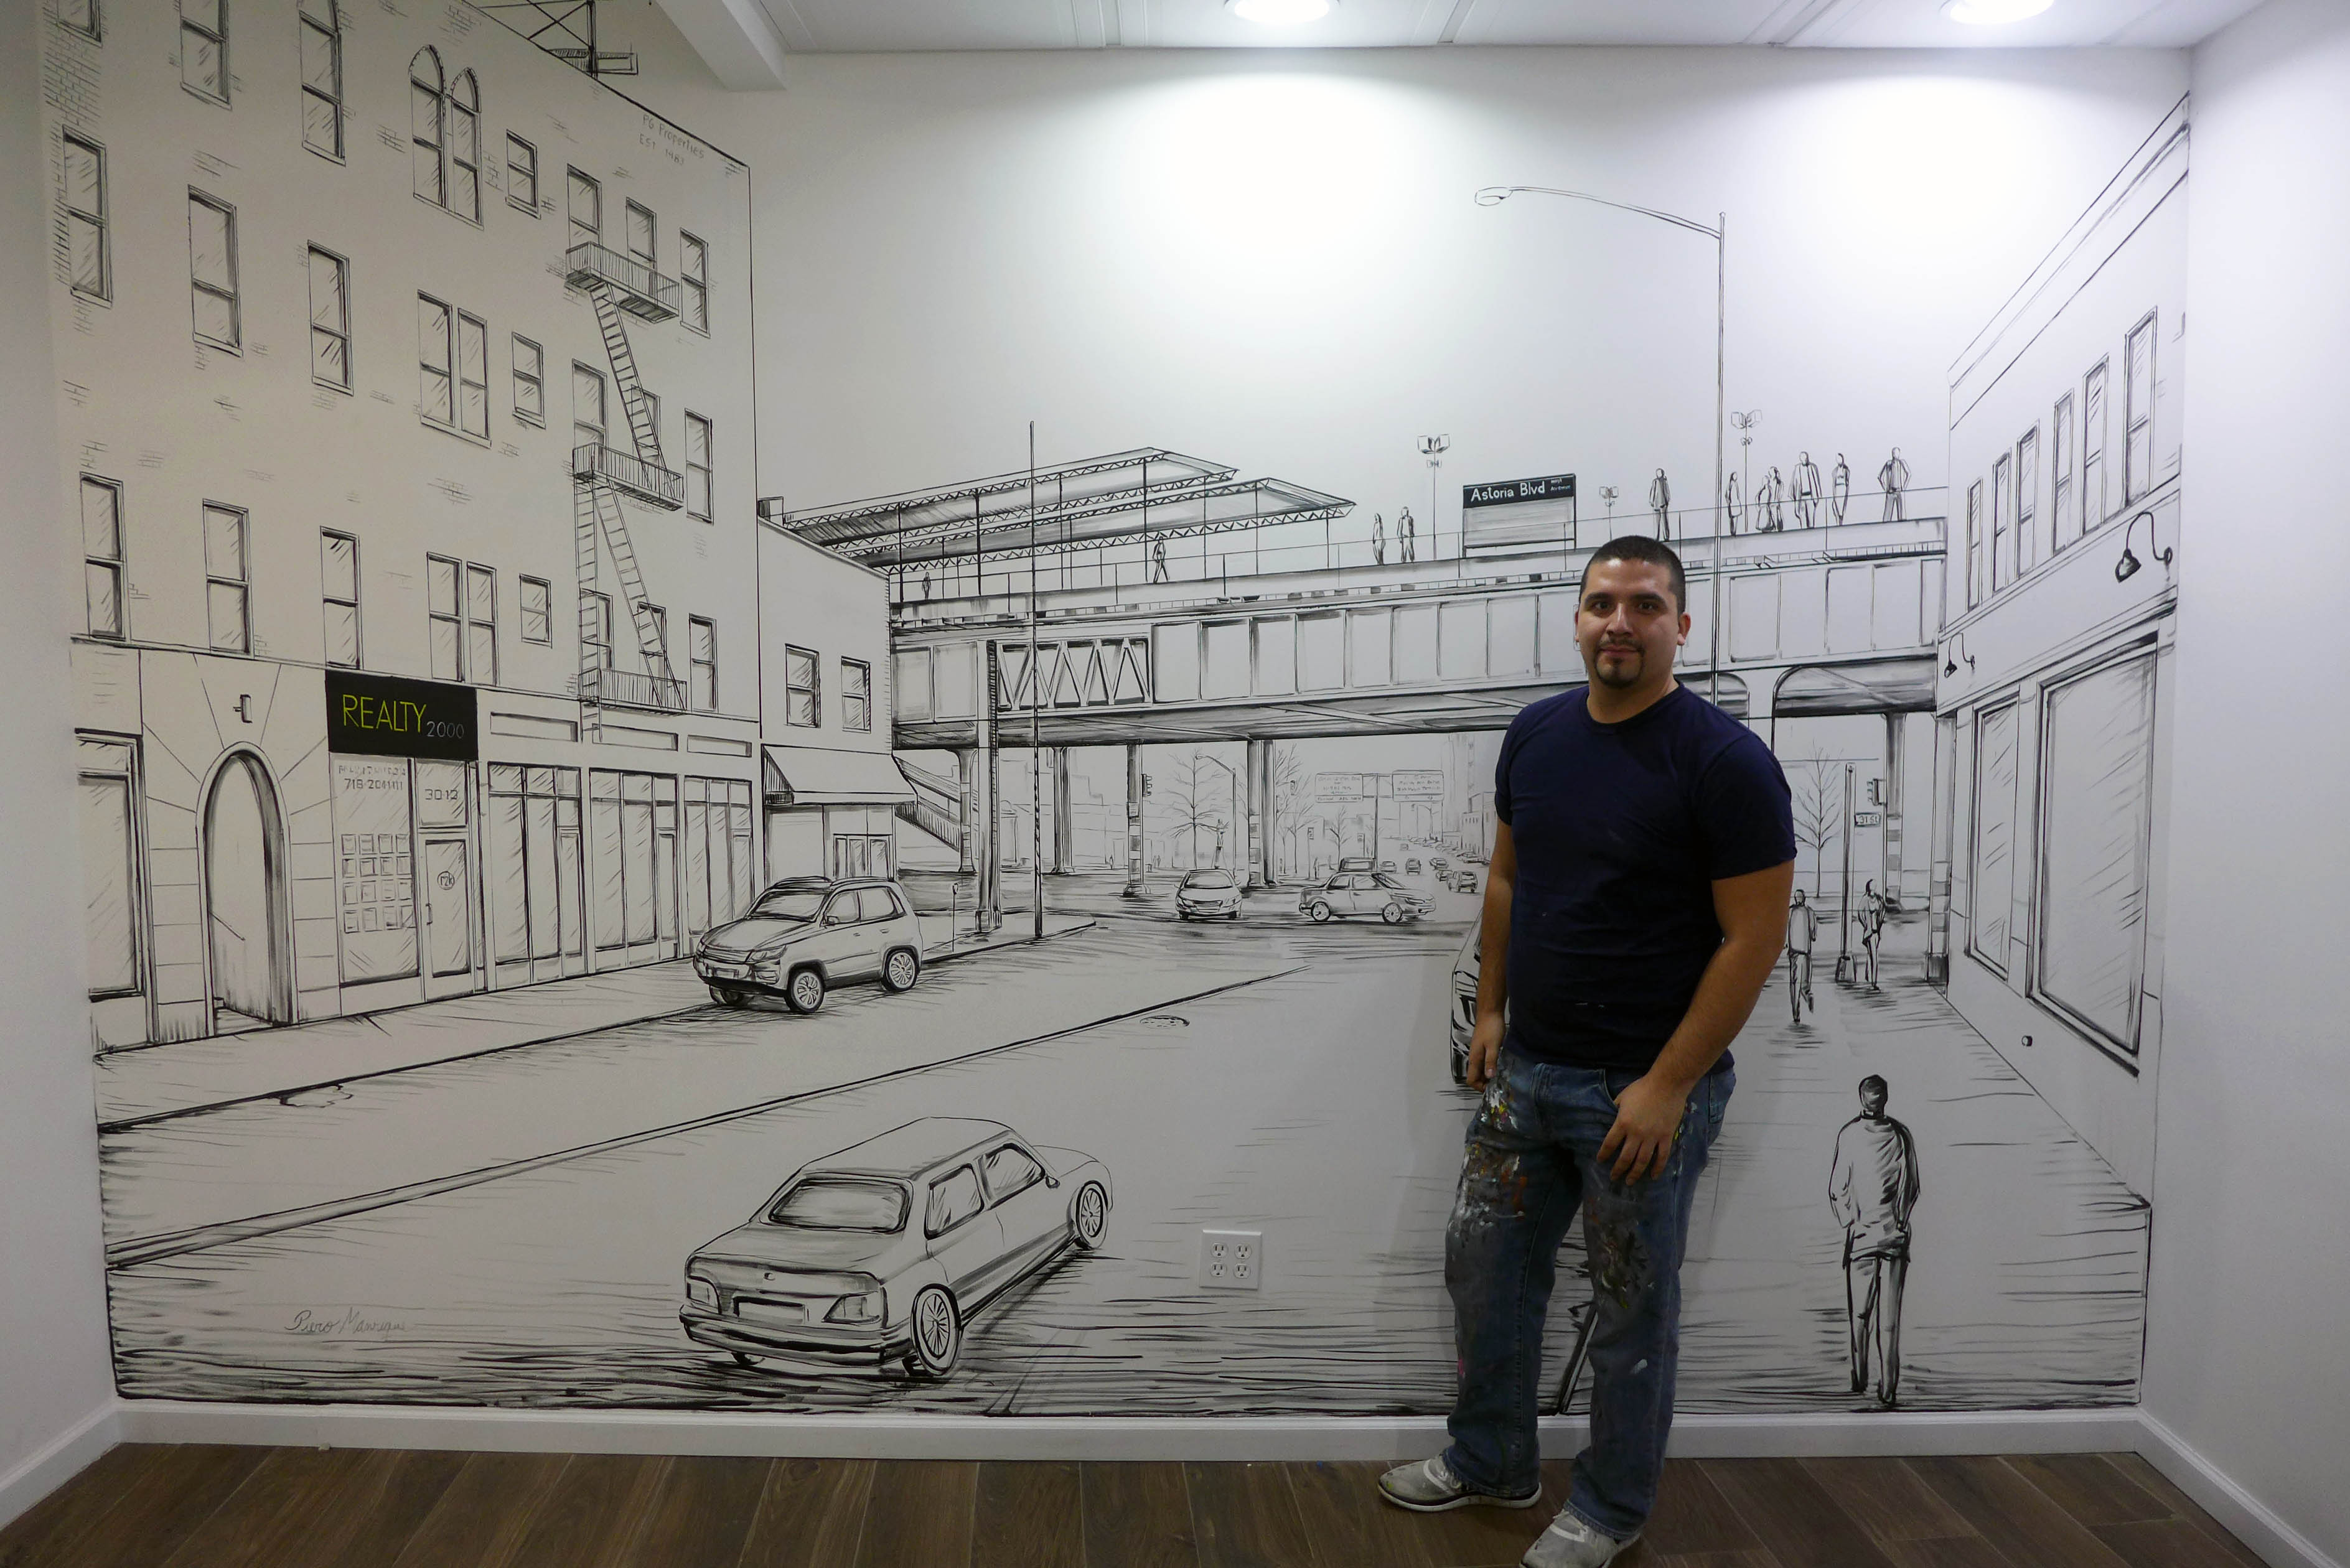 NY Muralist Manrique with NYC mural